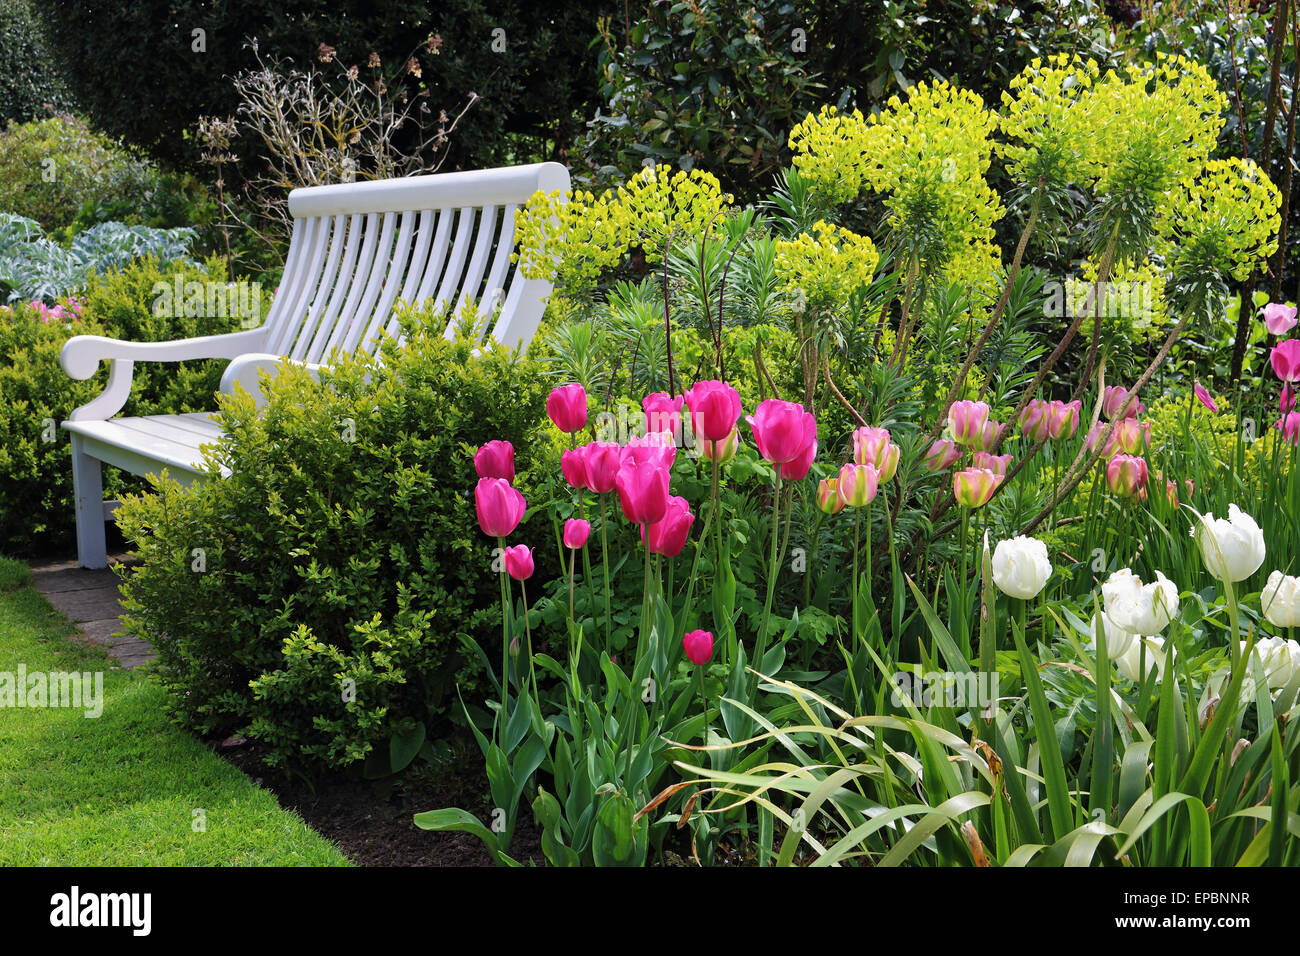 Bench Seat In An English Garden With Shrubs Plants And Colourful